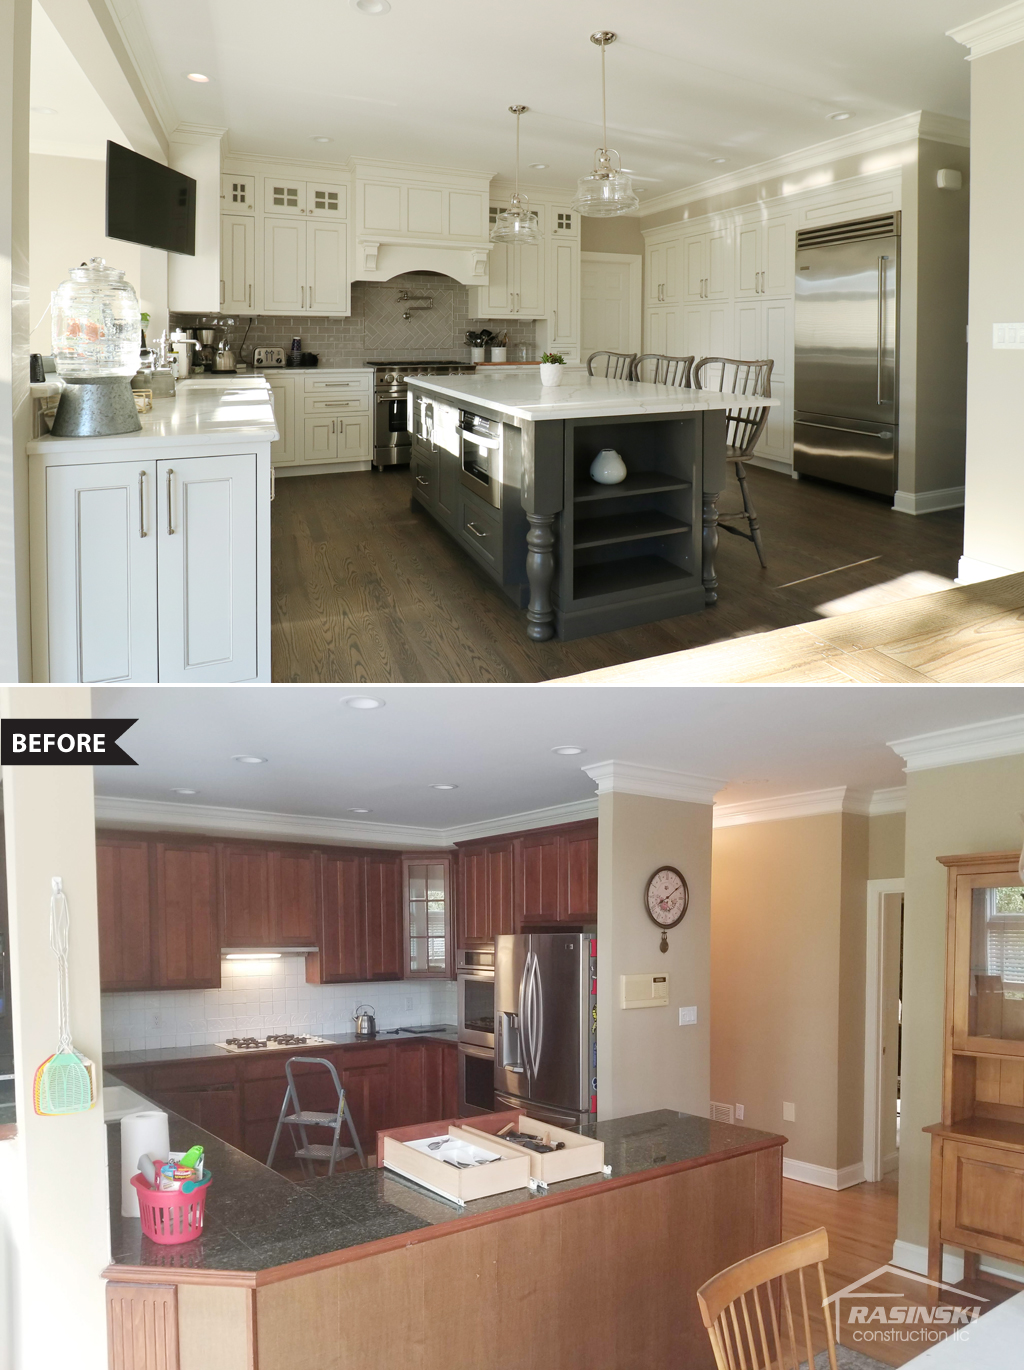 Before and After Photos of Kitchen Remodeling Project in Monmouth County NJ by Rasinski Construction